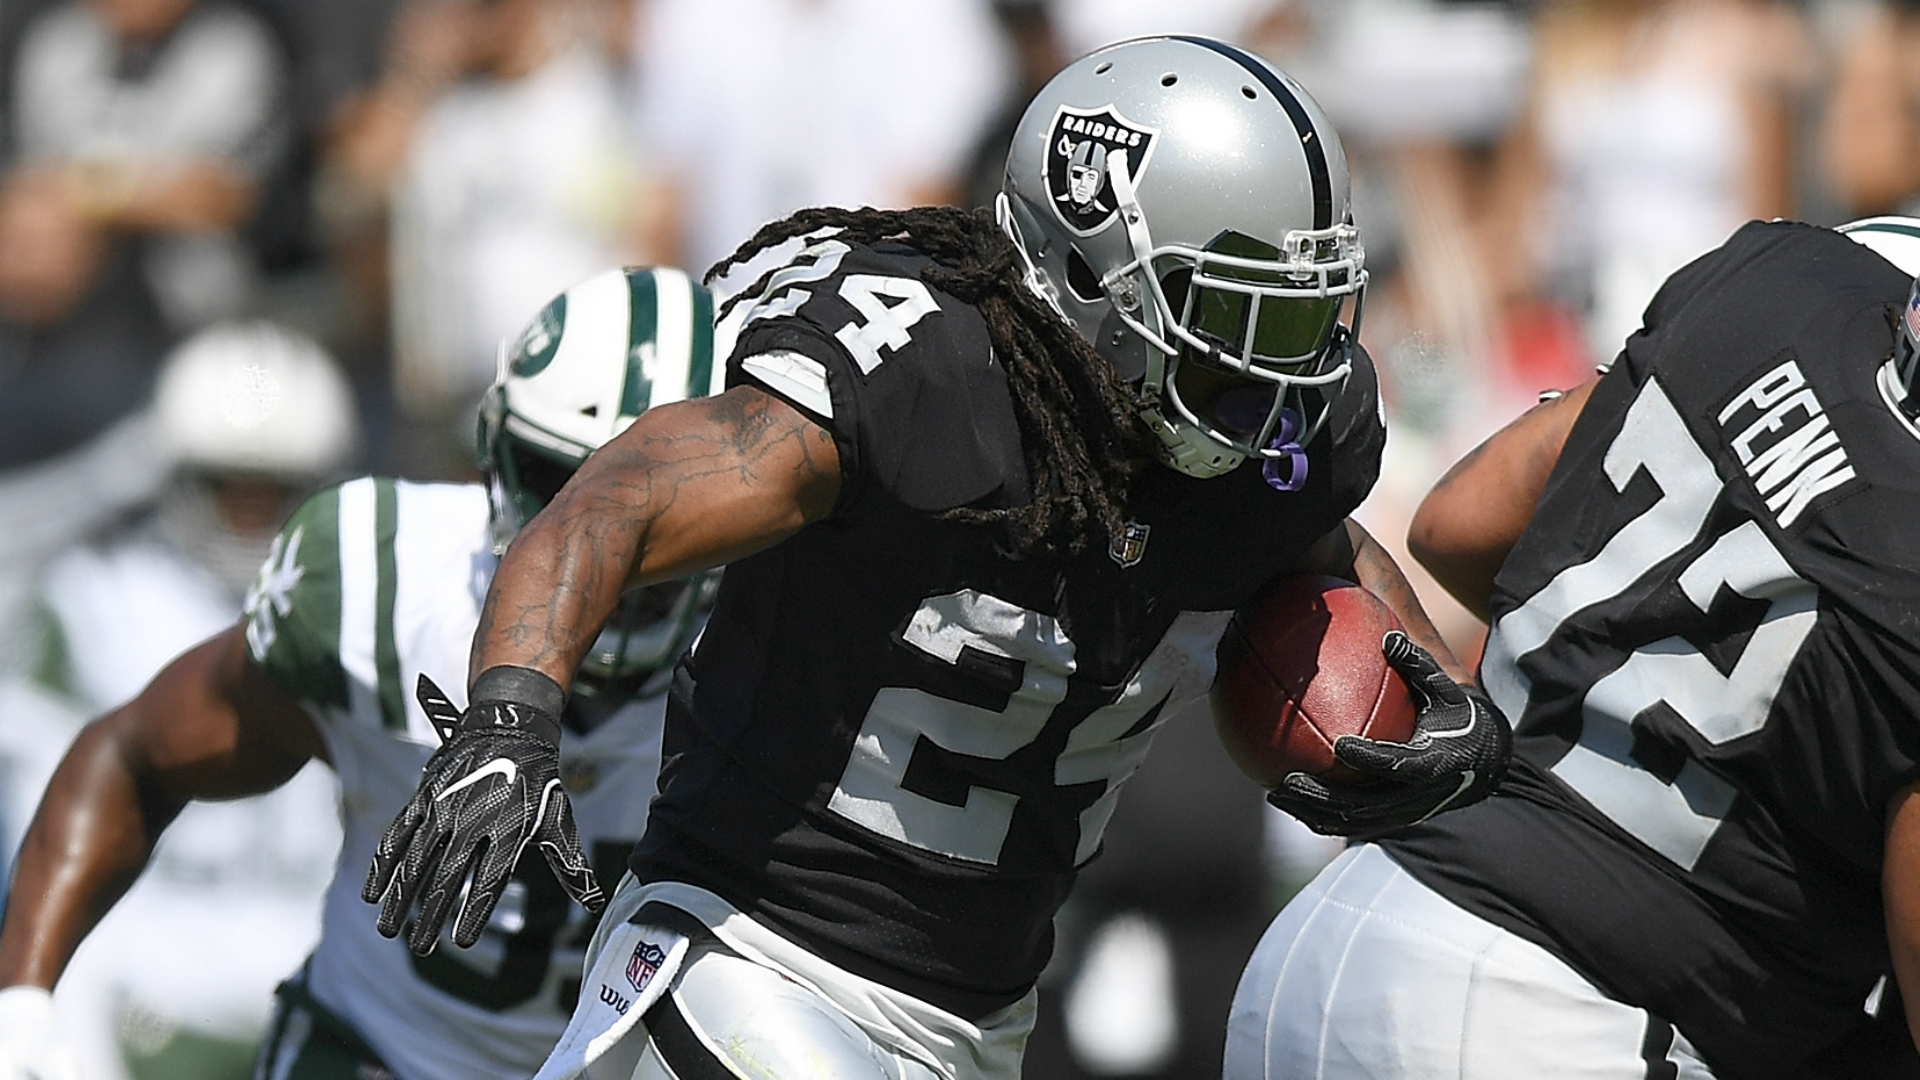 With Raiders rolling, Marshawn Lynch entertains crowd by dancing on the sideline